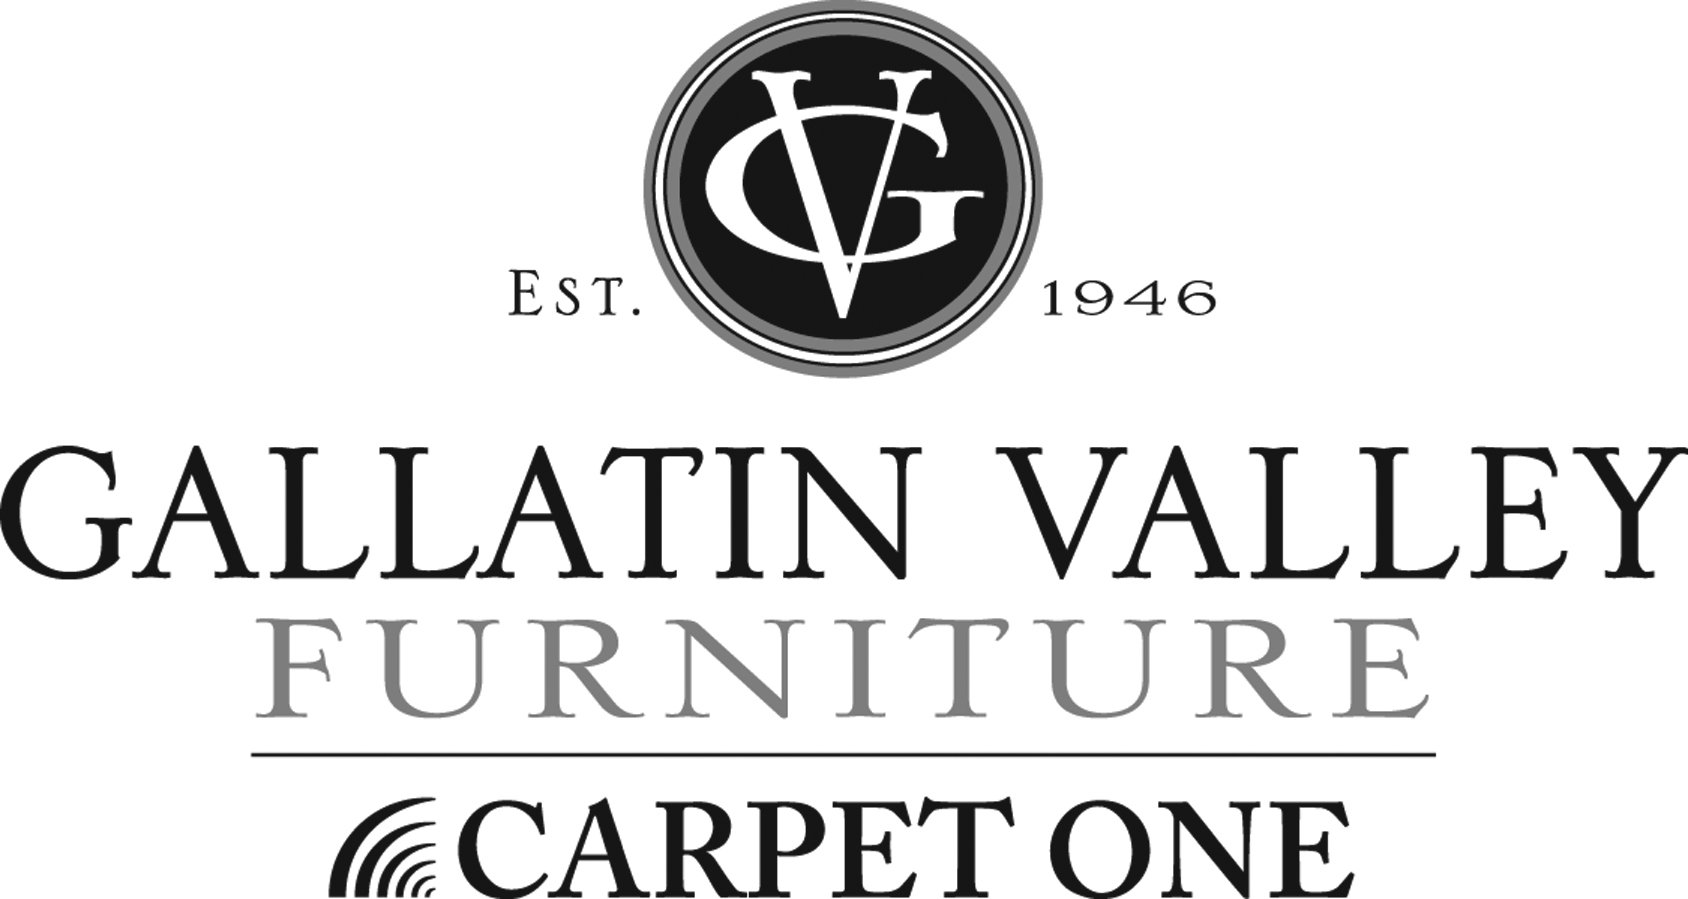 Gallatin Valley Furniture Carpet One